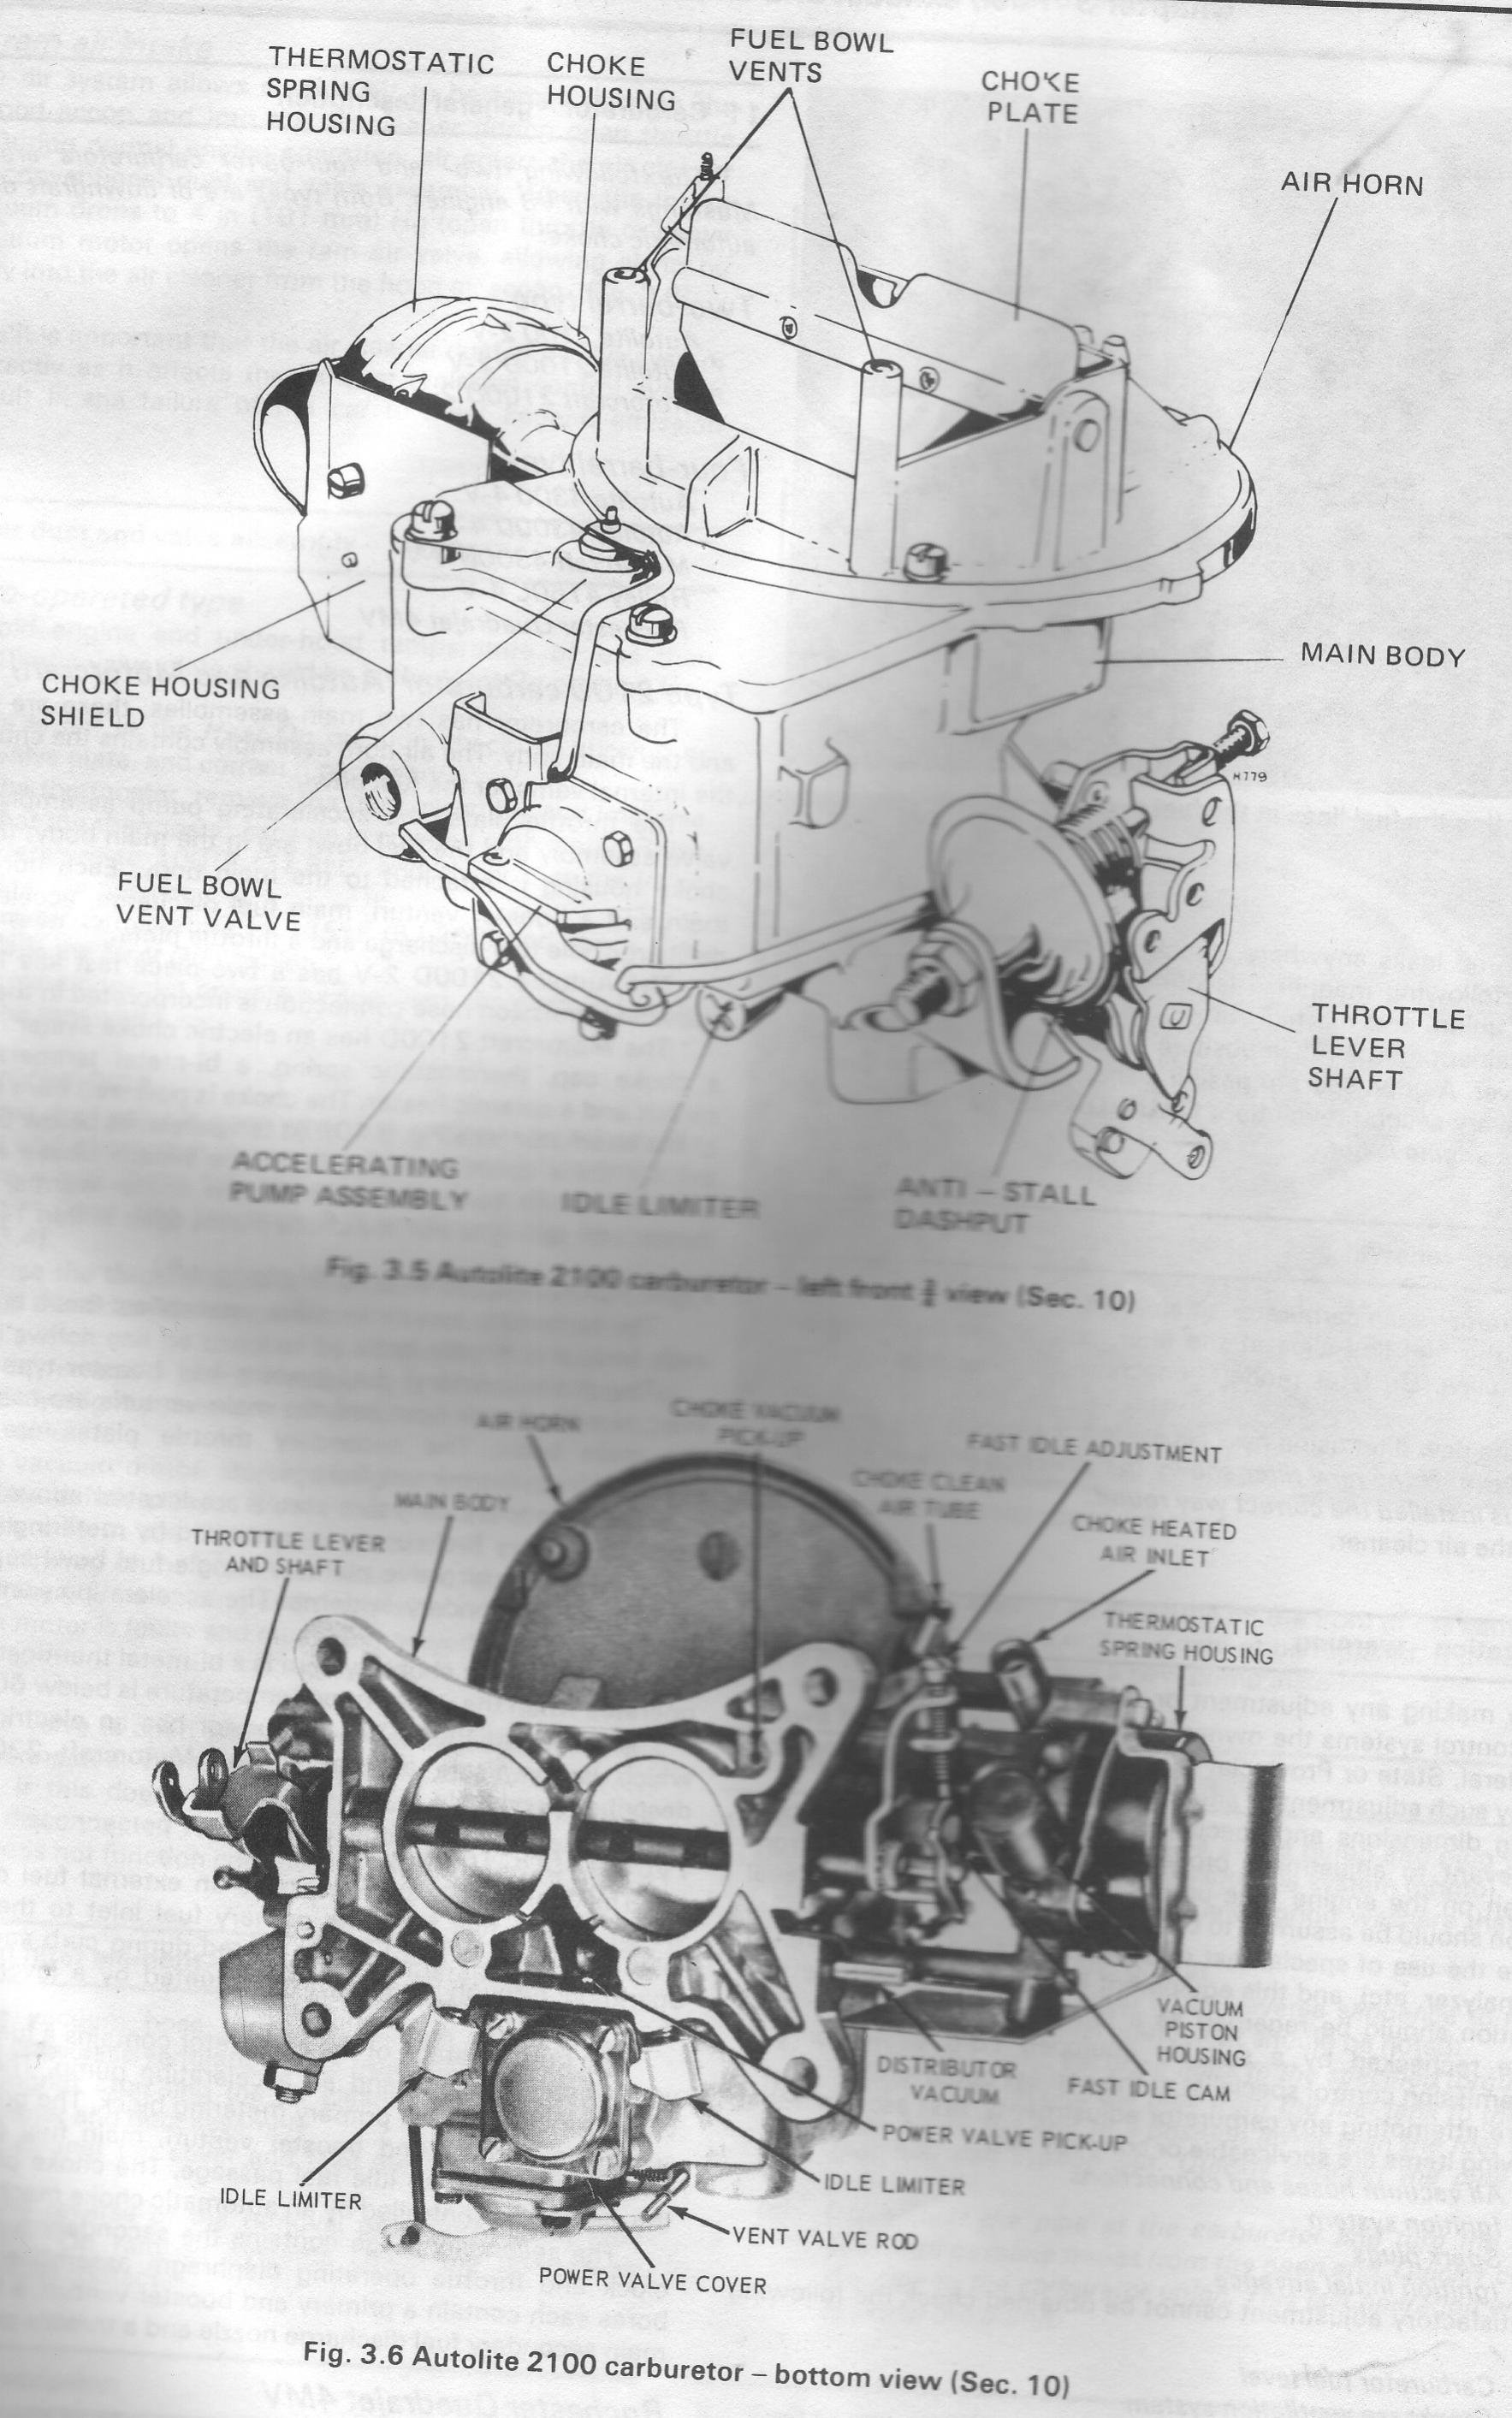 63152d1236399041 2100 carb diagram motorcraft 2 2100 carb diagram page 2 ford mustang forum Motorcraft 2150 Carburetor Identification at cita.asia